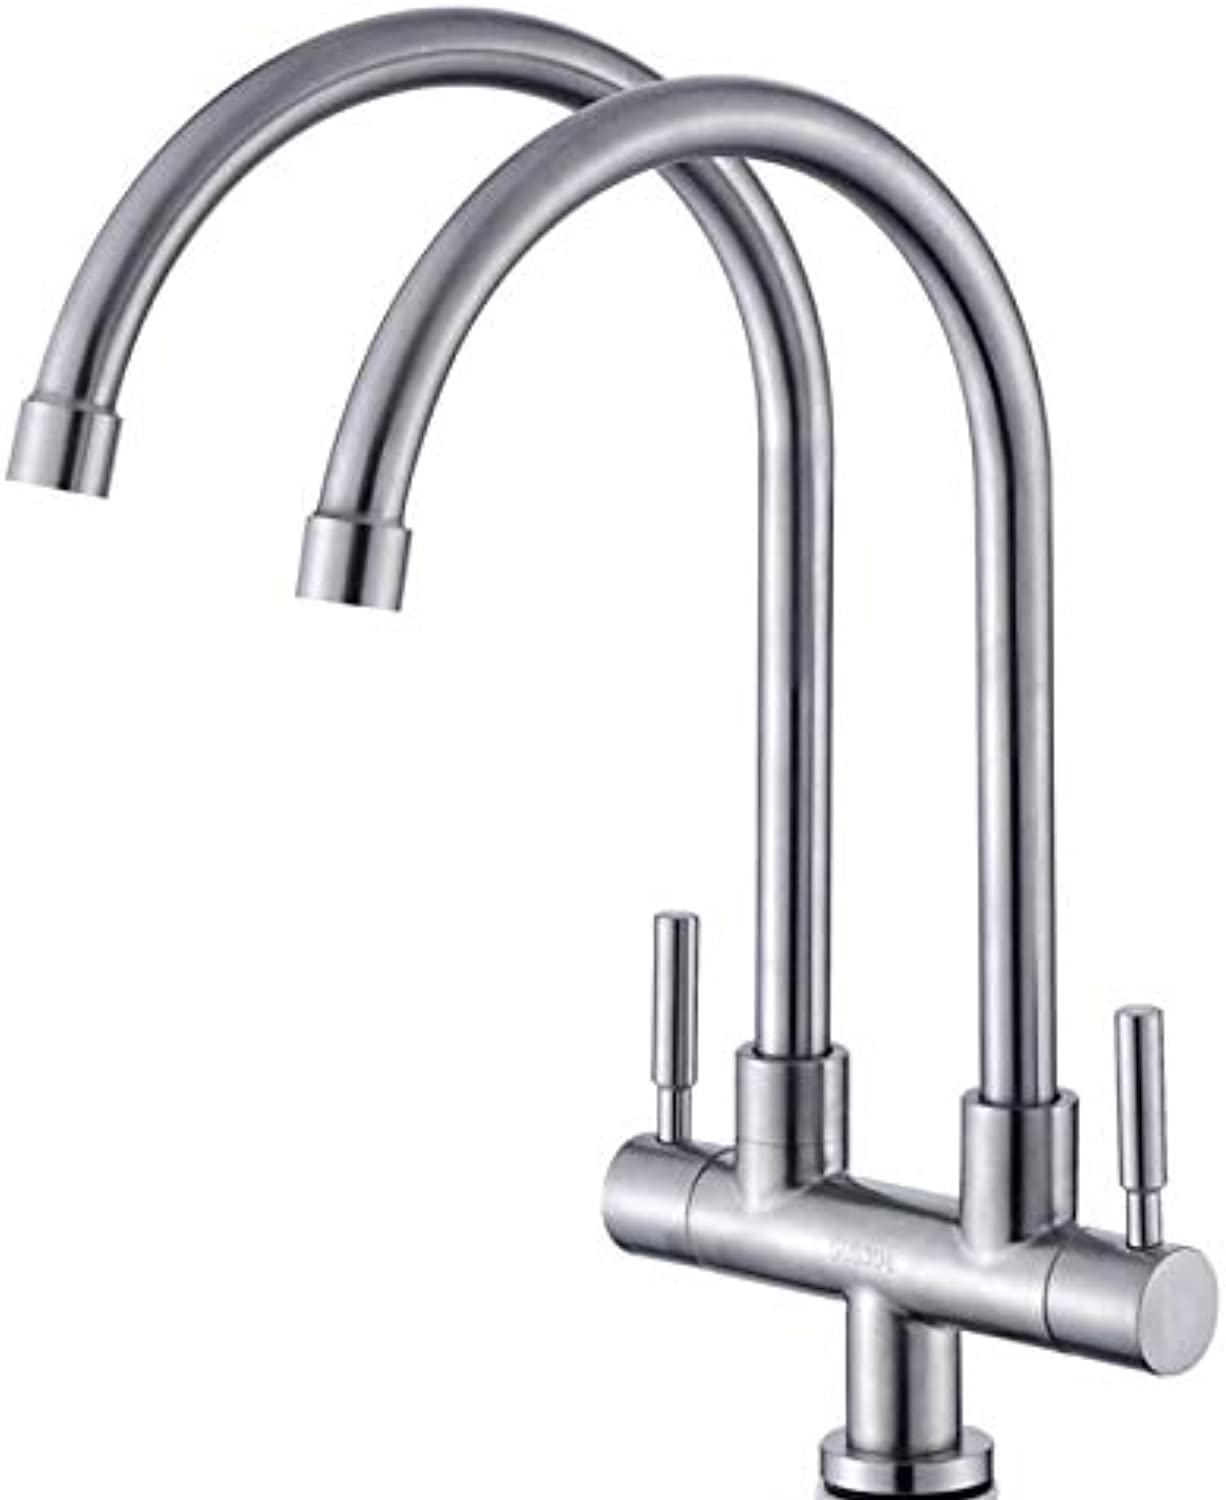 Bathroom Faucet 304 Stainless Steel Kitchen Faucet One Into Two Out Double Kitchen Single Cold Faucet Double Basin Double Single Cold